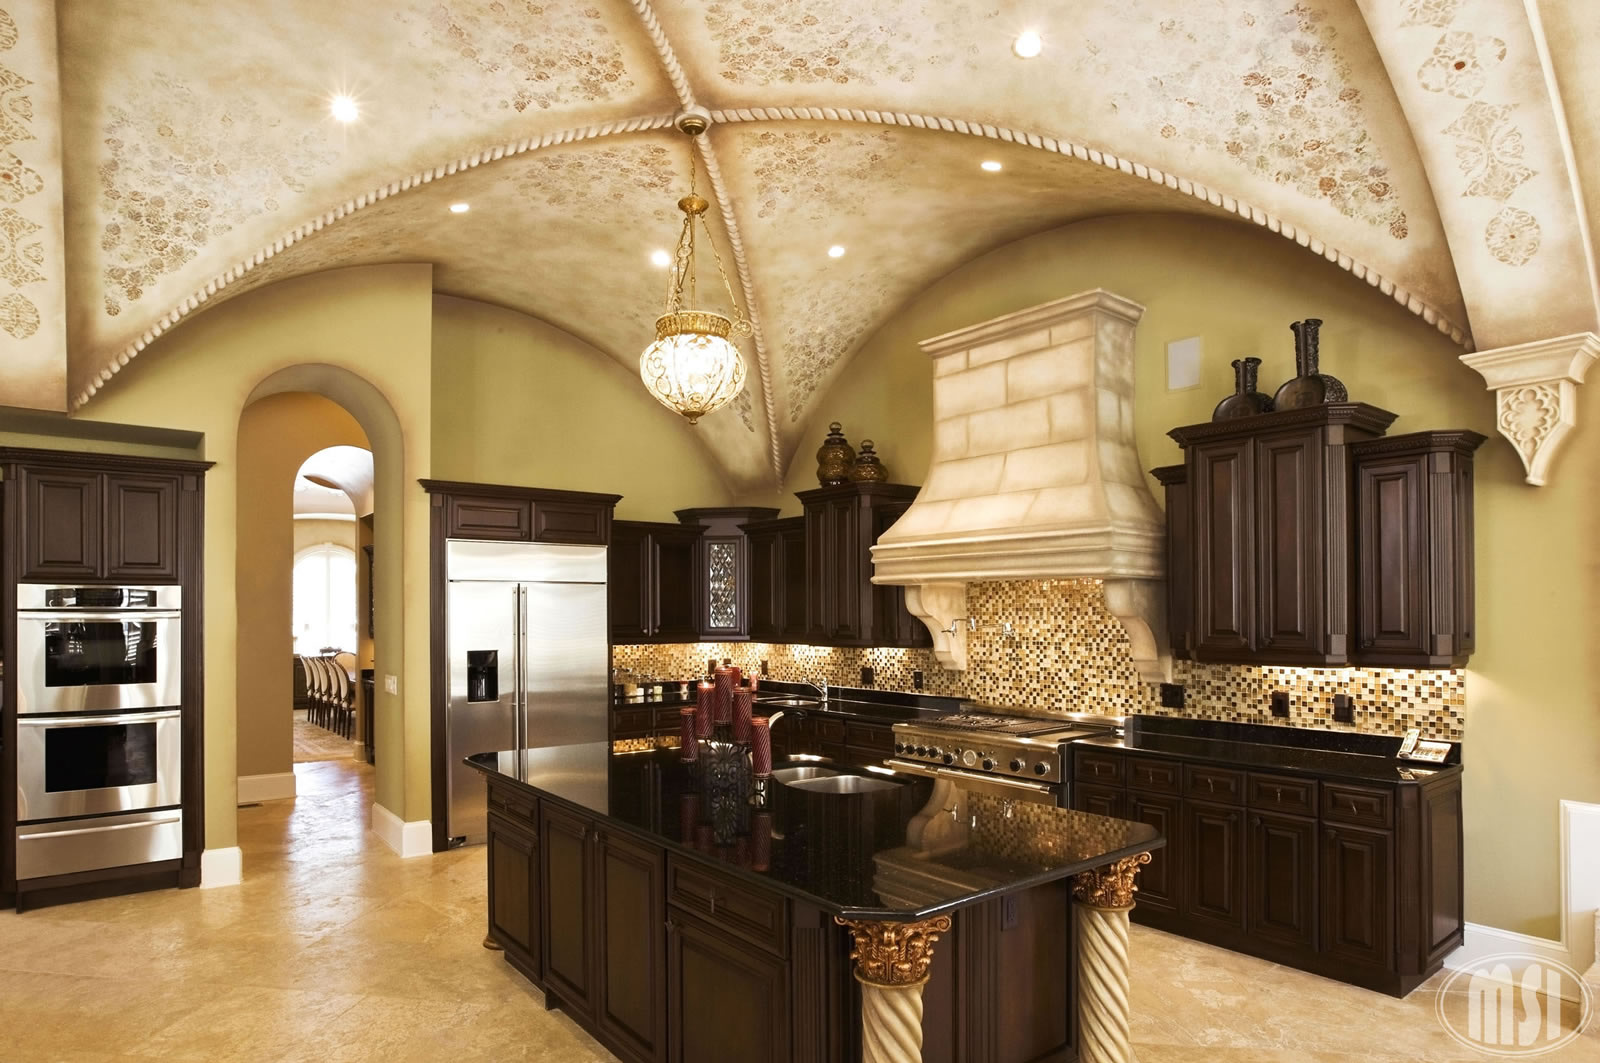 Traditional Luxury Kitchens Naples Contemporary Kitchen Bath Showroom South Florida Luxury